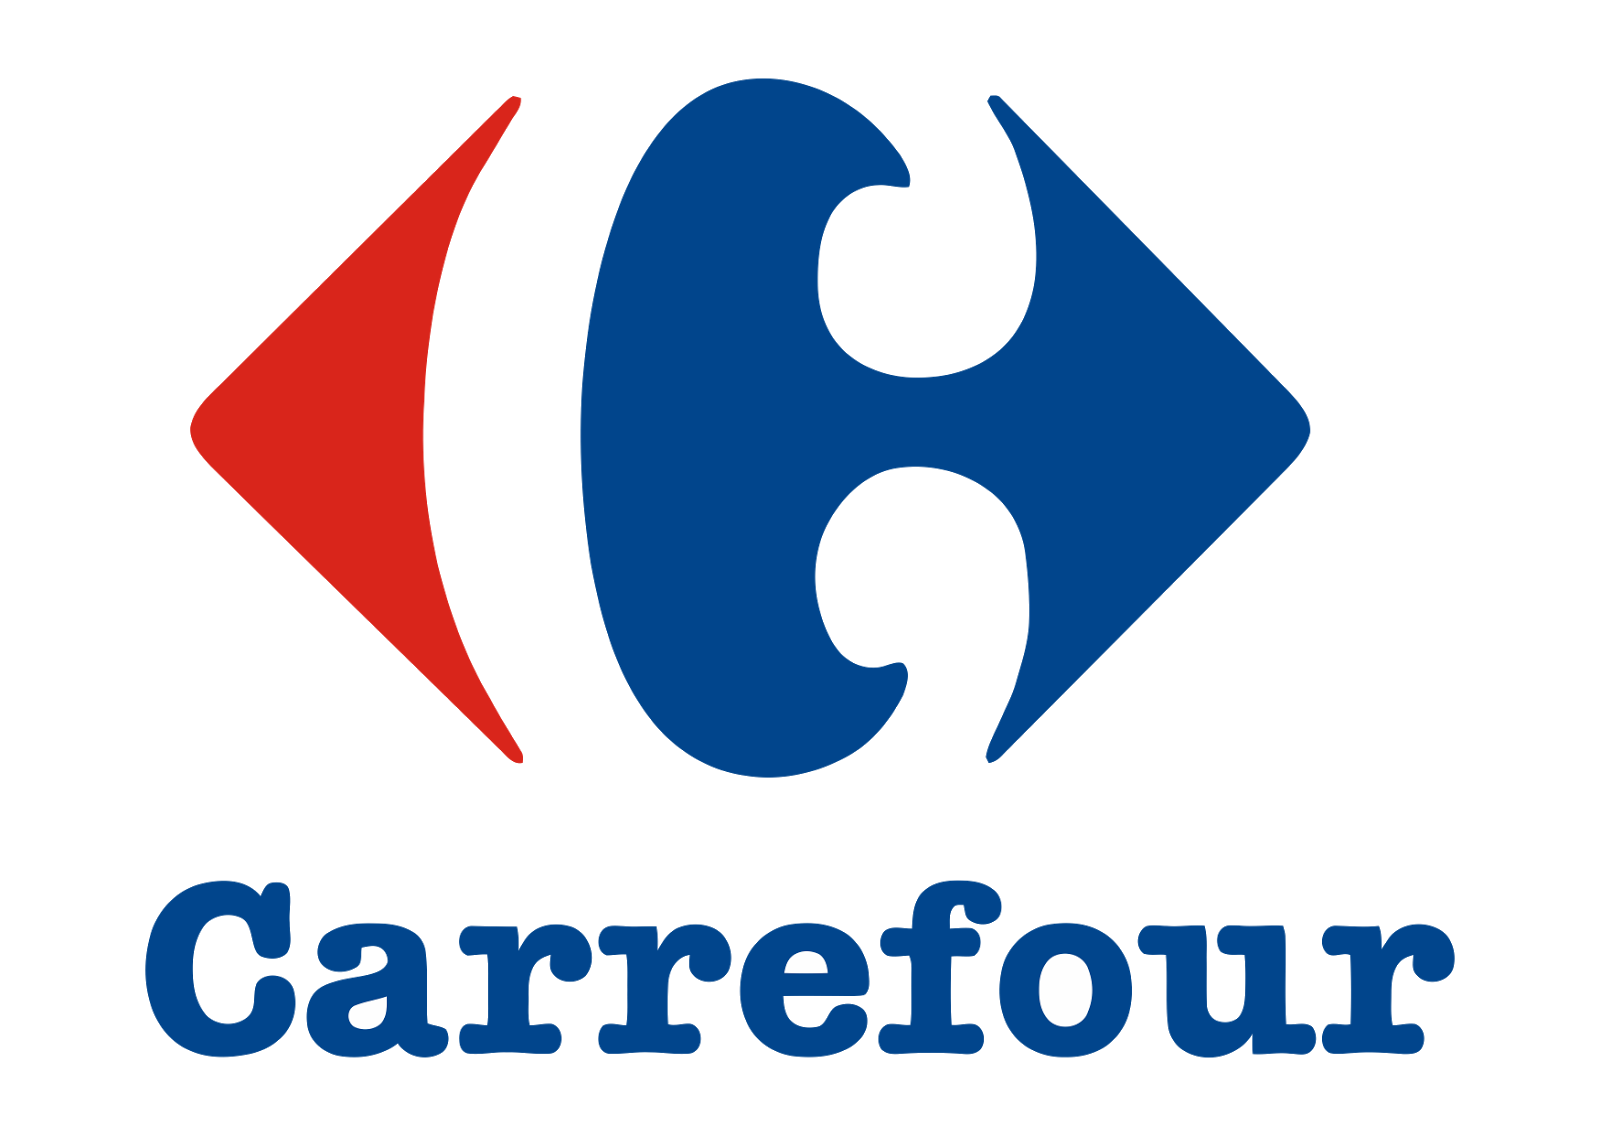 Carrefour Logo Vector - Carrefour Logo PNG